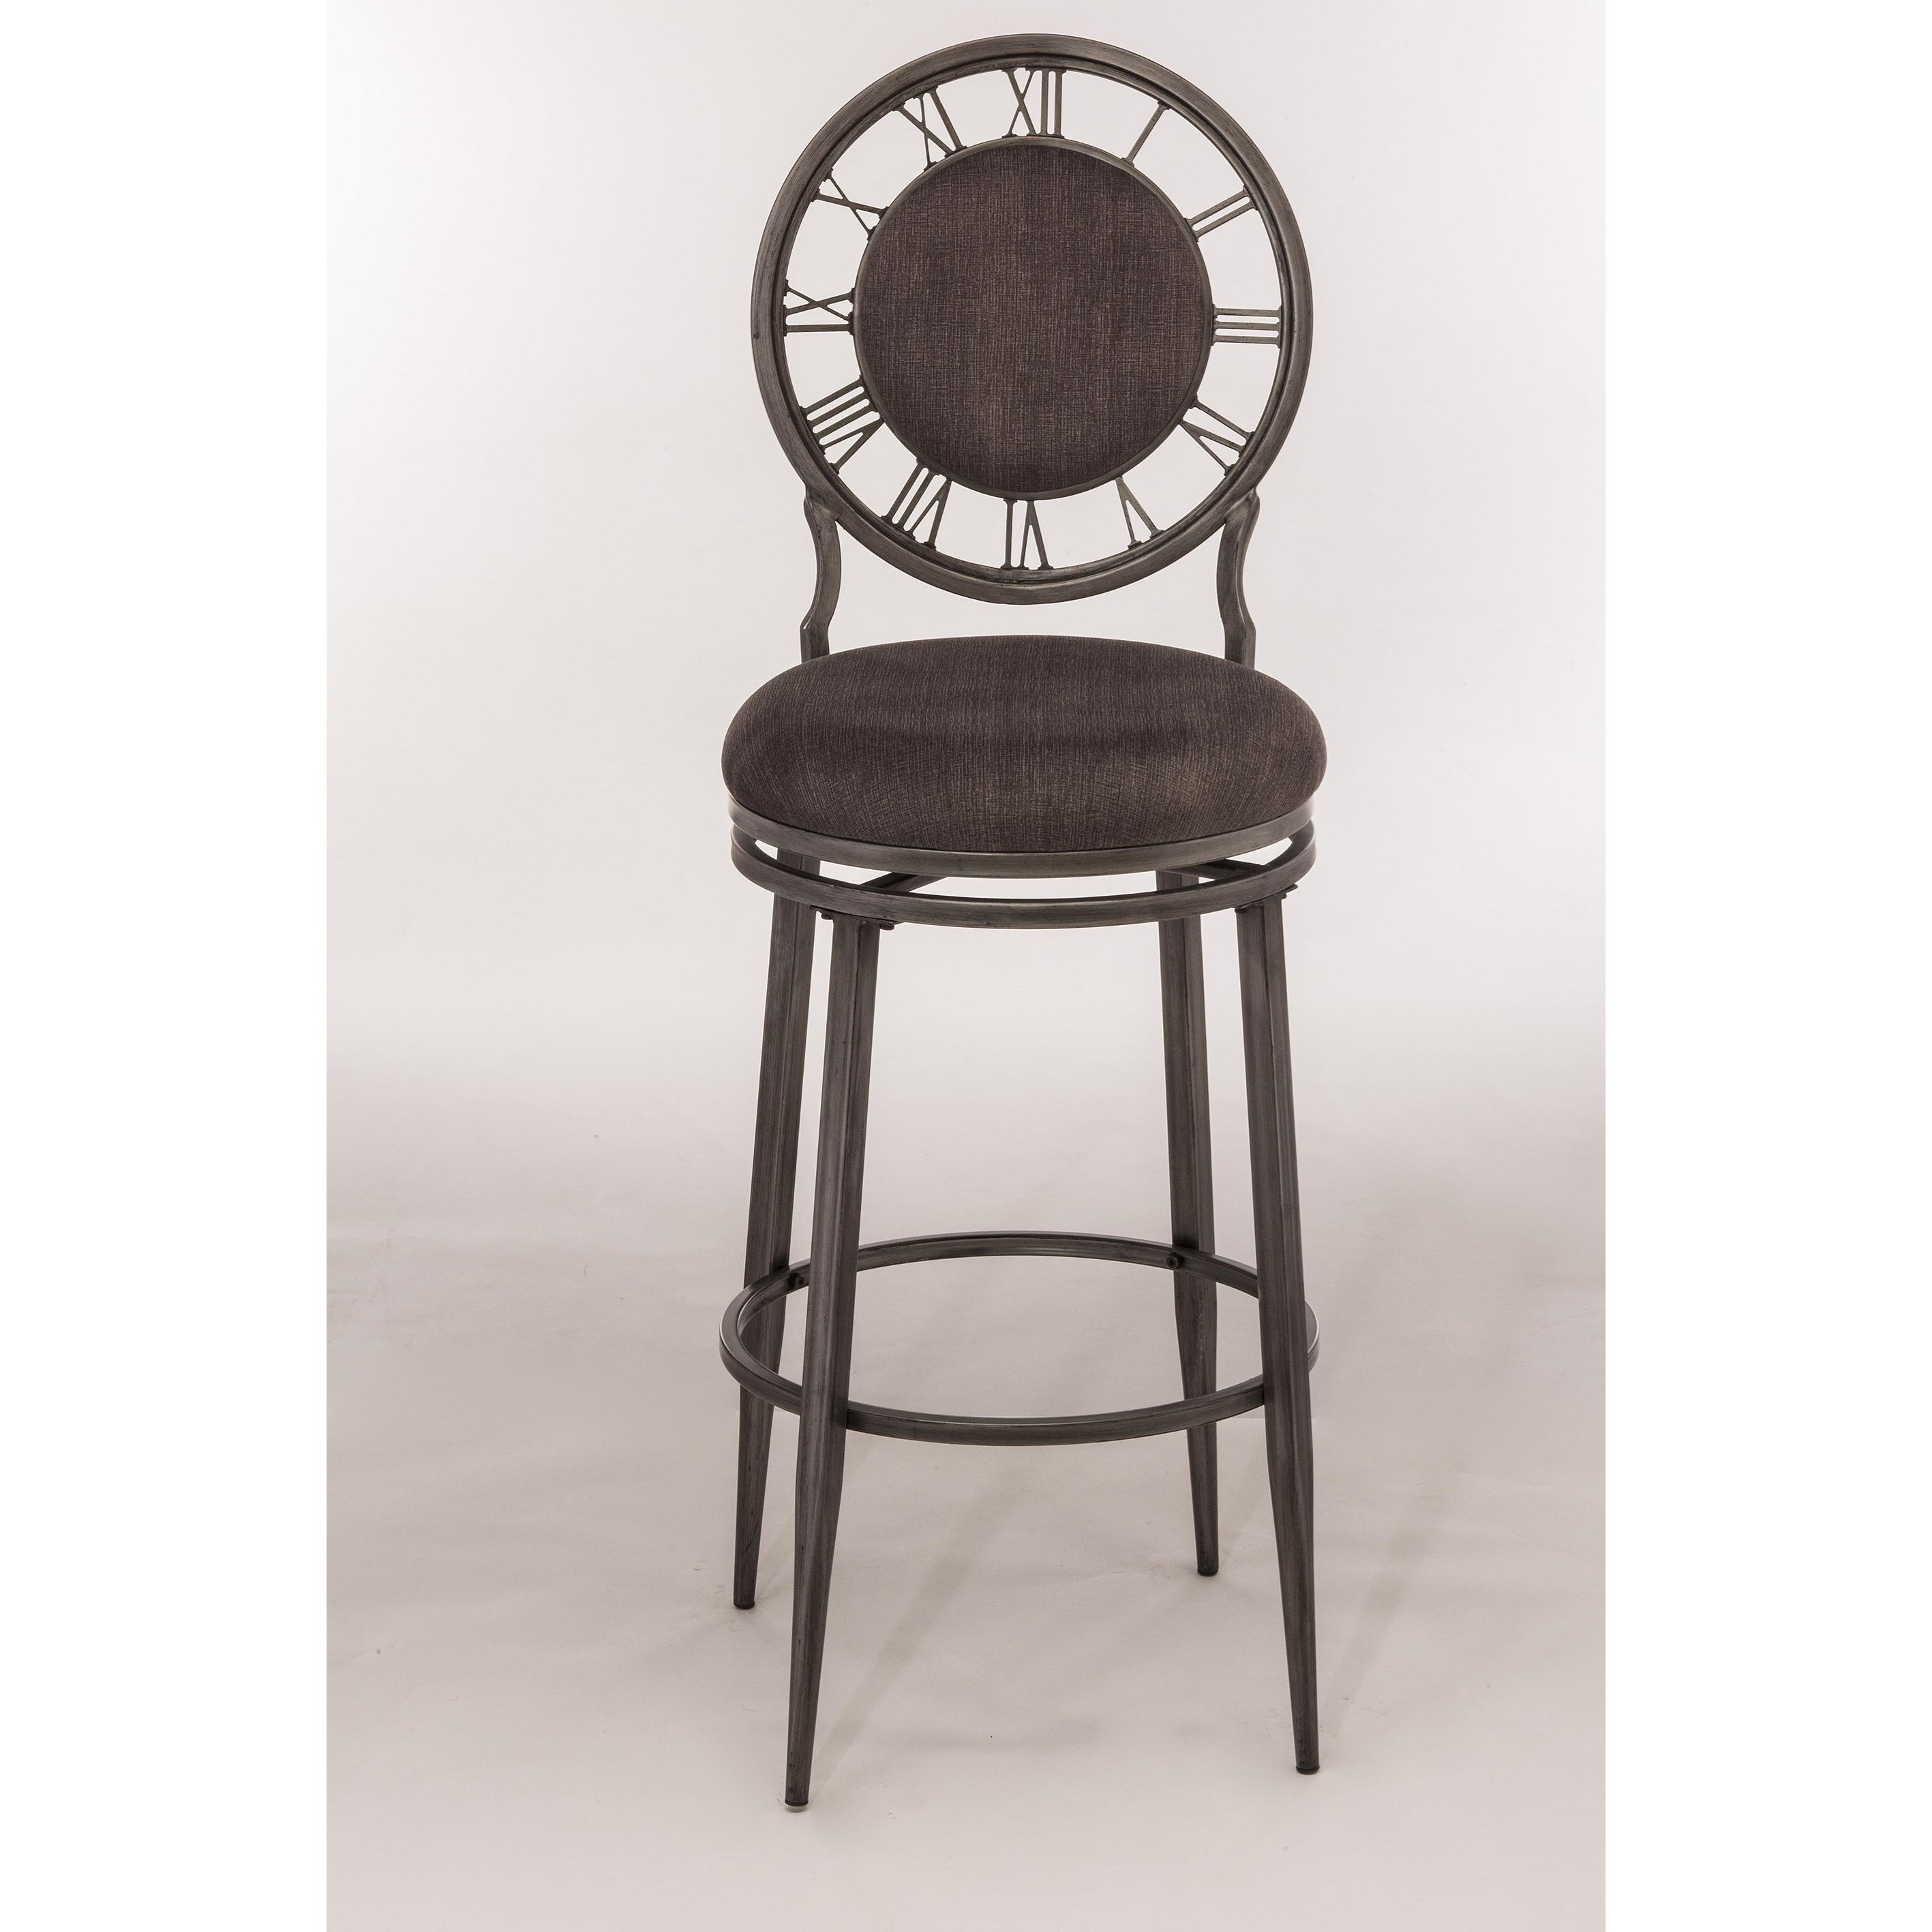 Hillsdale Metal Stools 5905 830 Swivel Bar Stool With